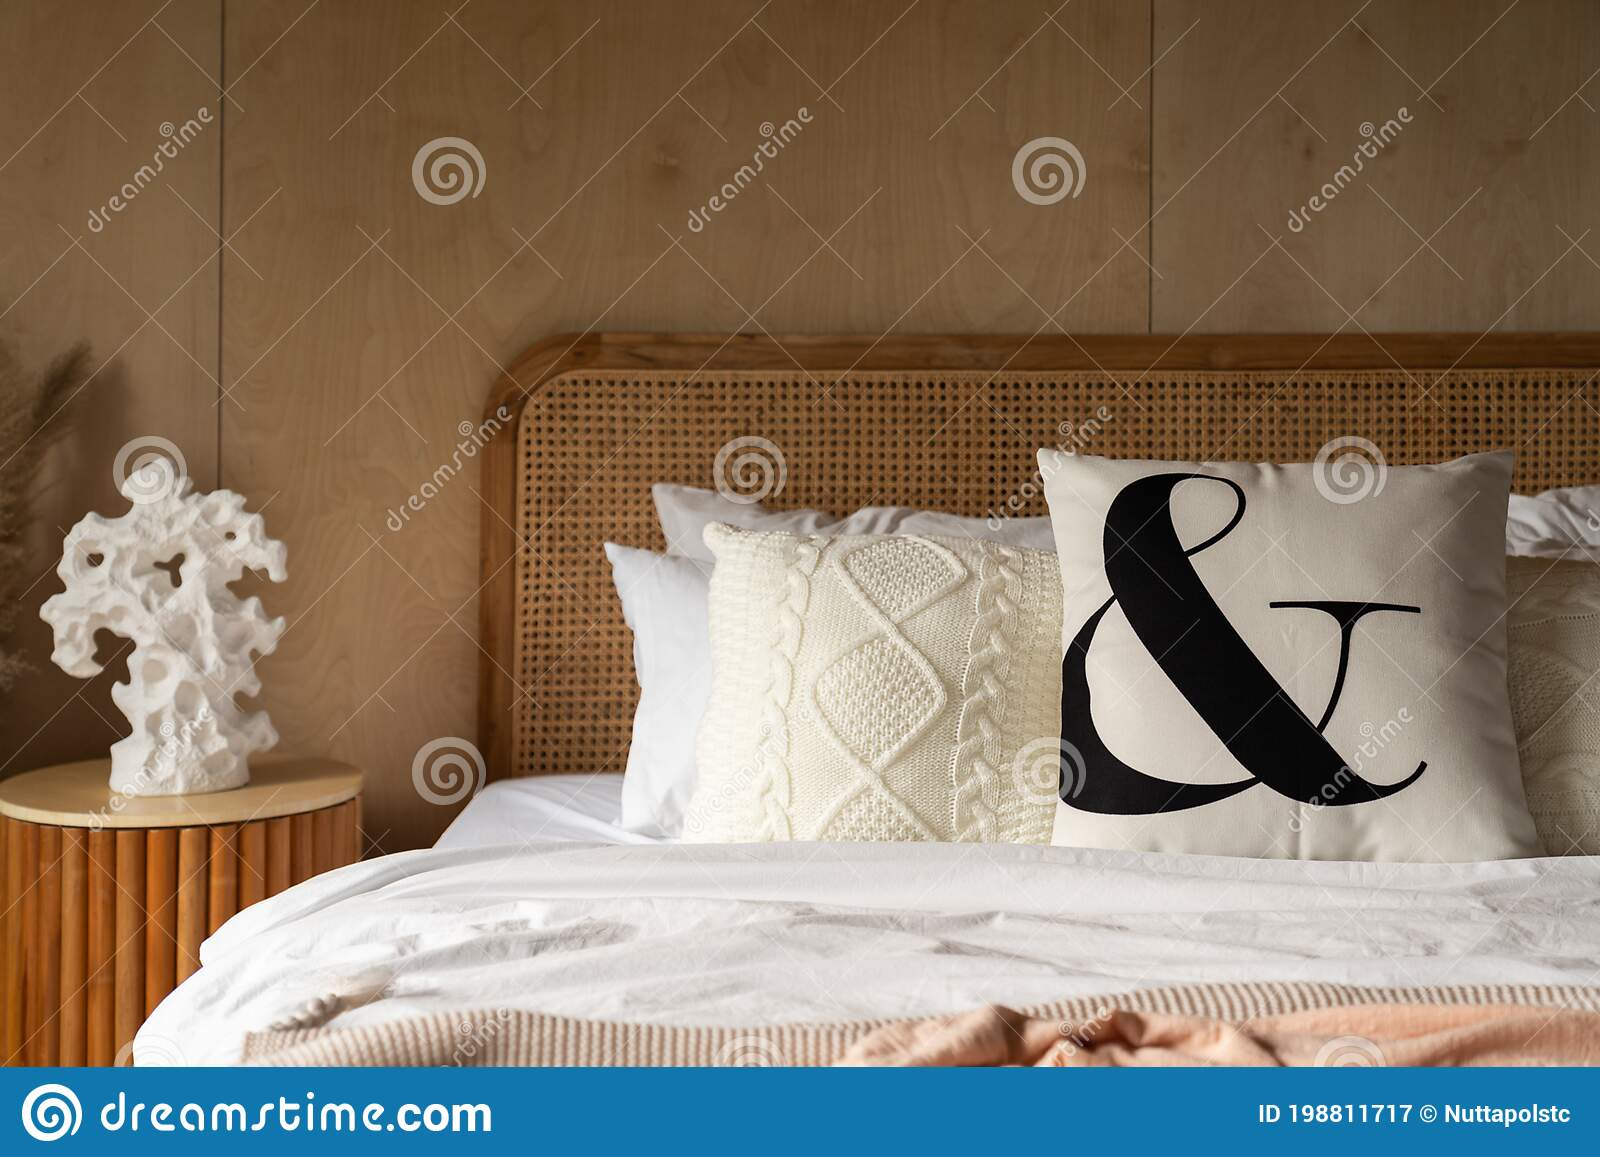 Stylish Bedroom Corner With Rattan Headboard Bed And Soft Pillow Decoration With With Plywood Wall On The Background Cozy Stock Image Image Of Lamp Isolated 198811717